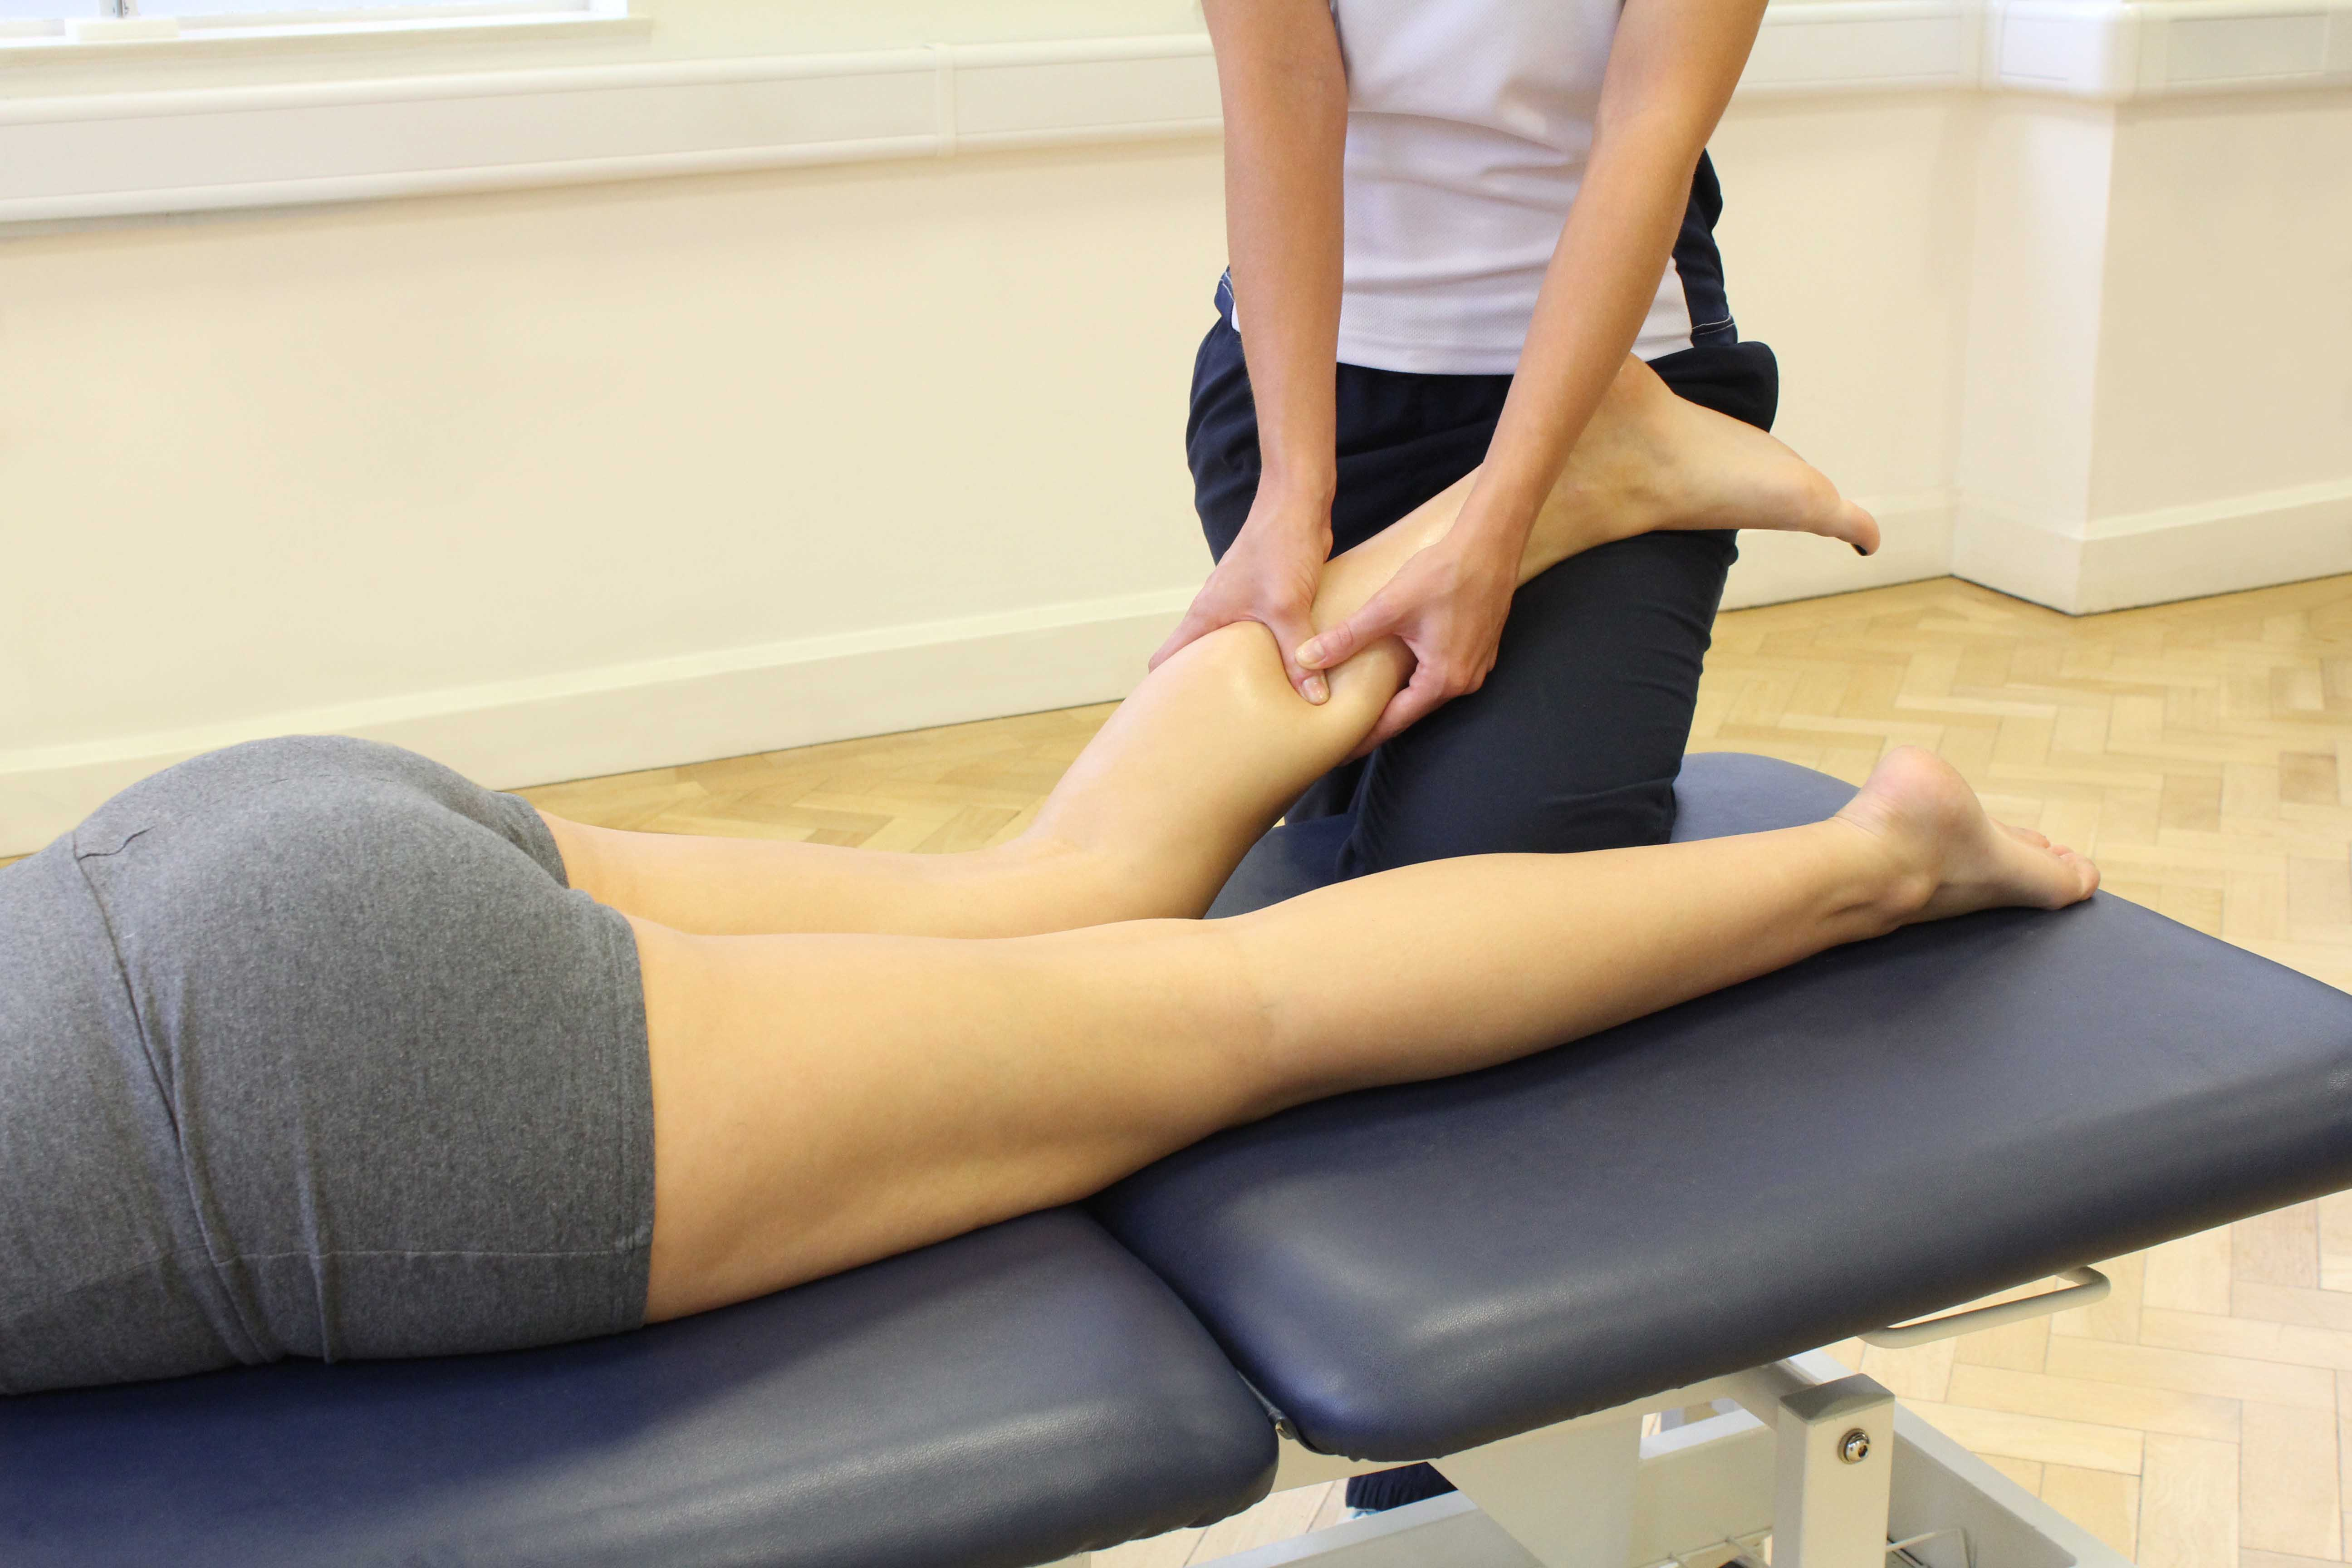 Trigger point massage of the gastrocnemius muscle